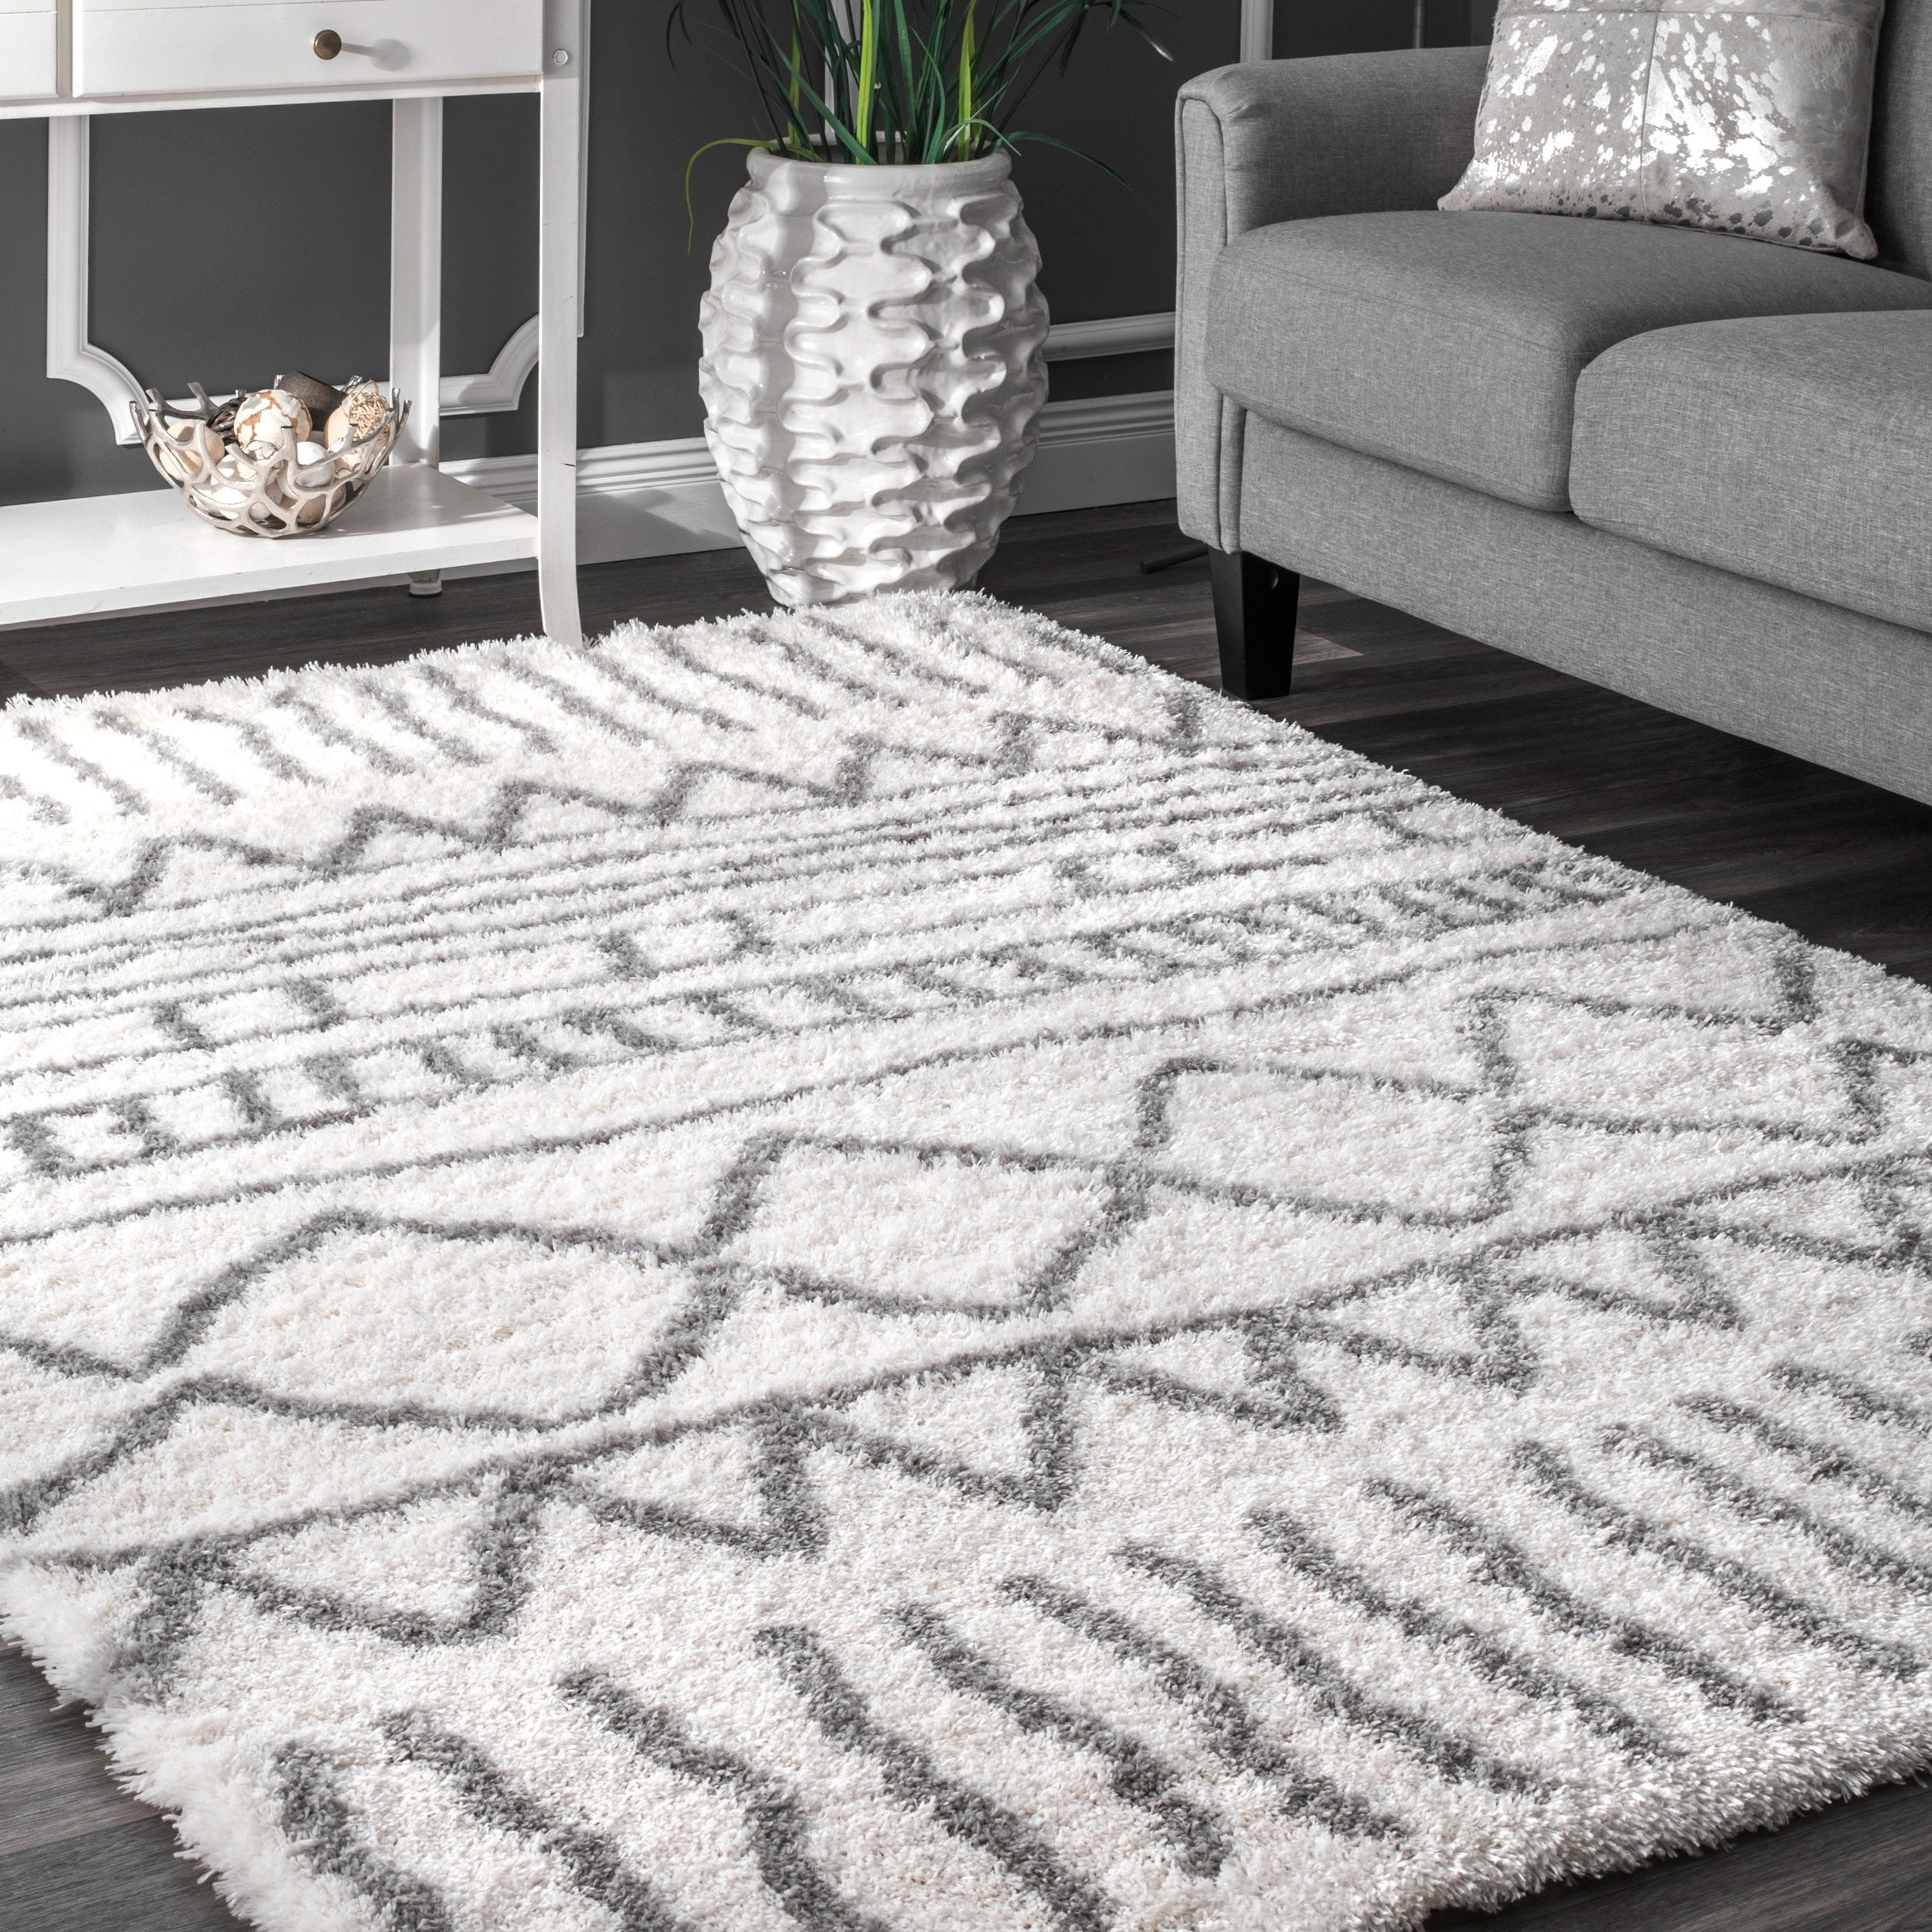 Shop Nuloom Soft And Plush Cloudy Shag Moroccan Geometric